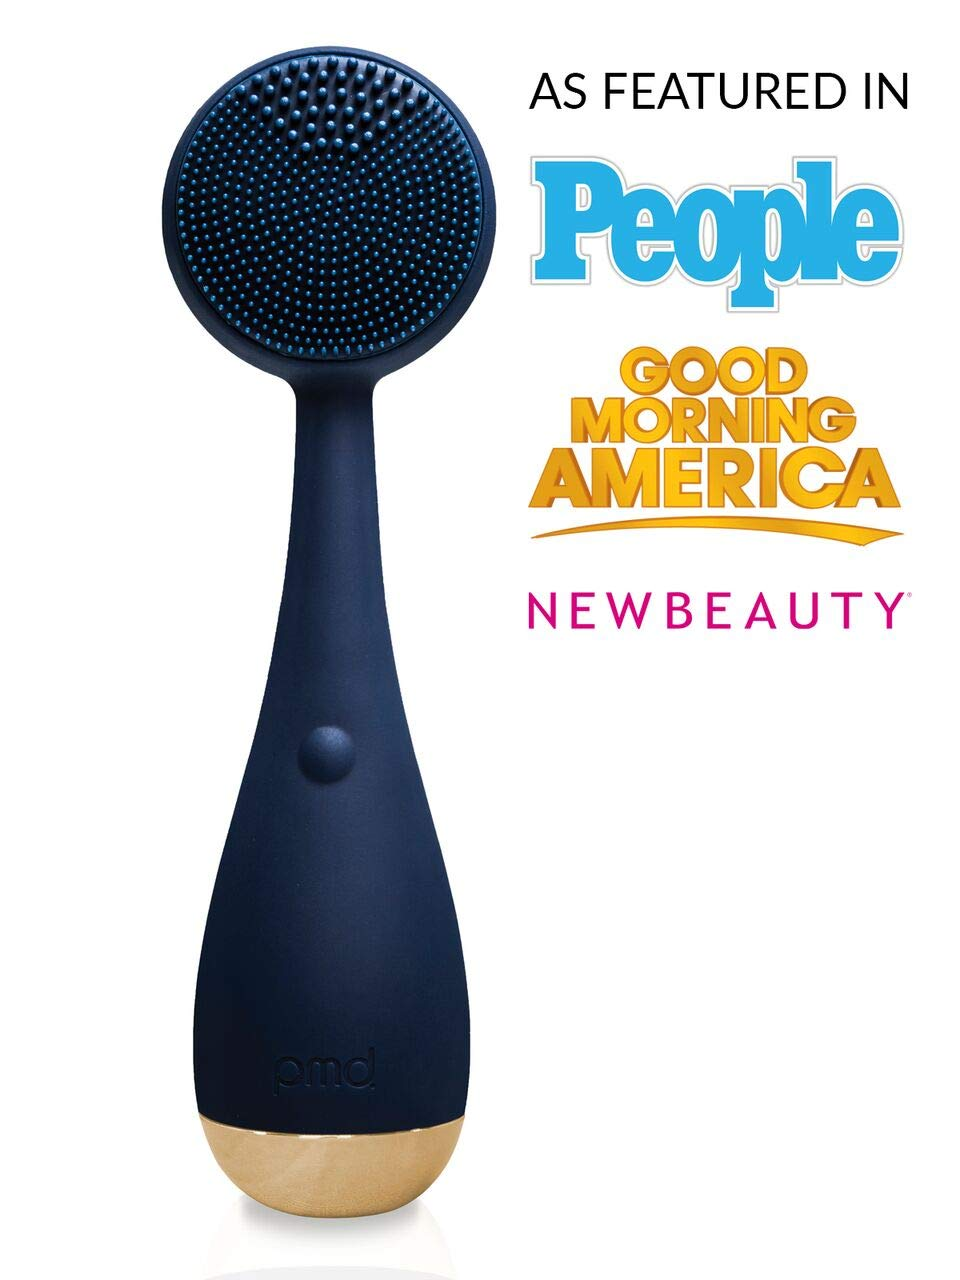 PMD Clean | Smart Facial Cleansing Brush and Face Massager Device for Youthful Skin | Navy with Gold by PMD Personal Microderm (Image #2)